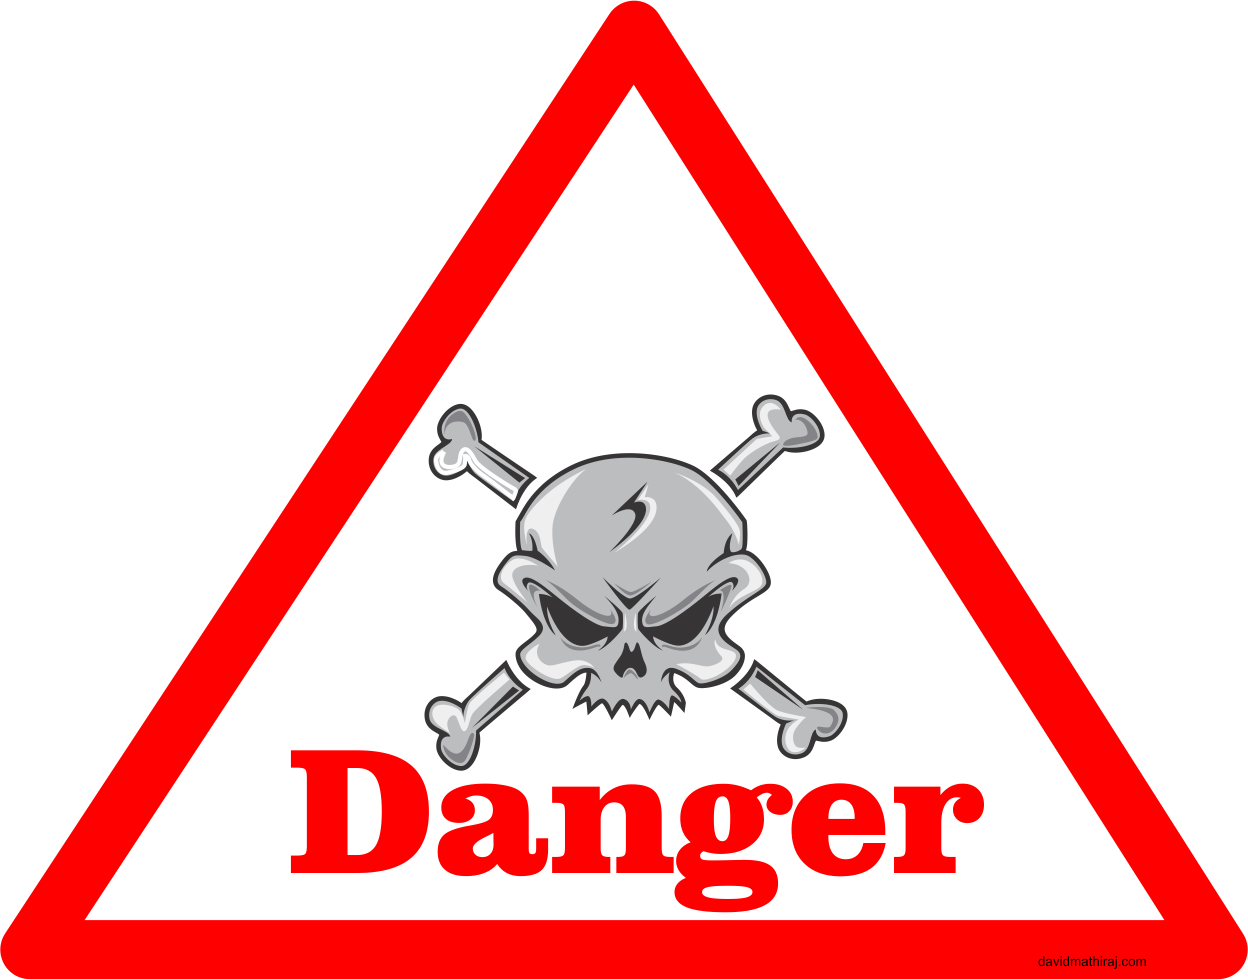 Danger Of The Judgment Tech Sci Manual Maker